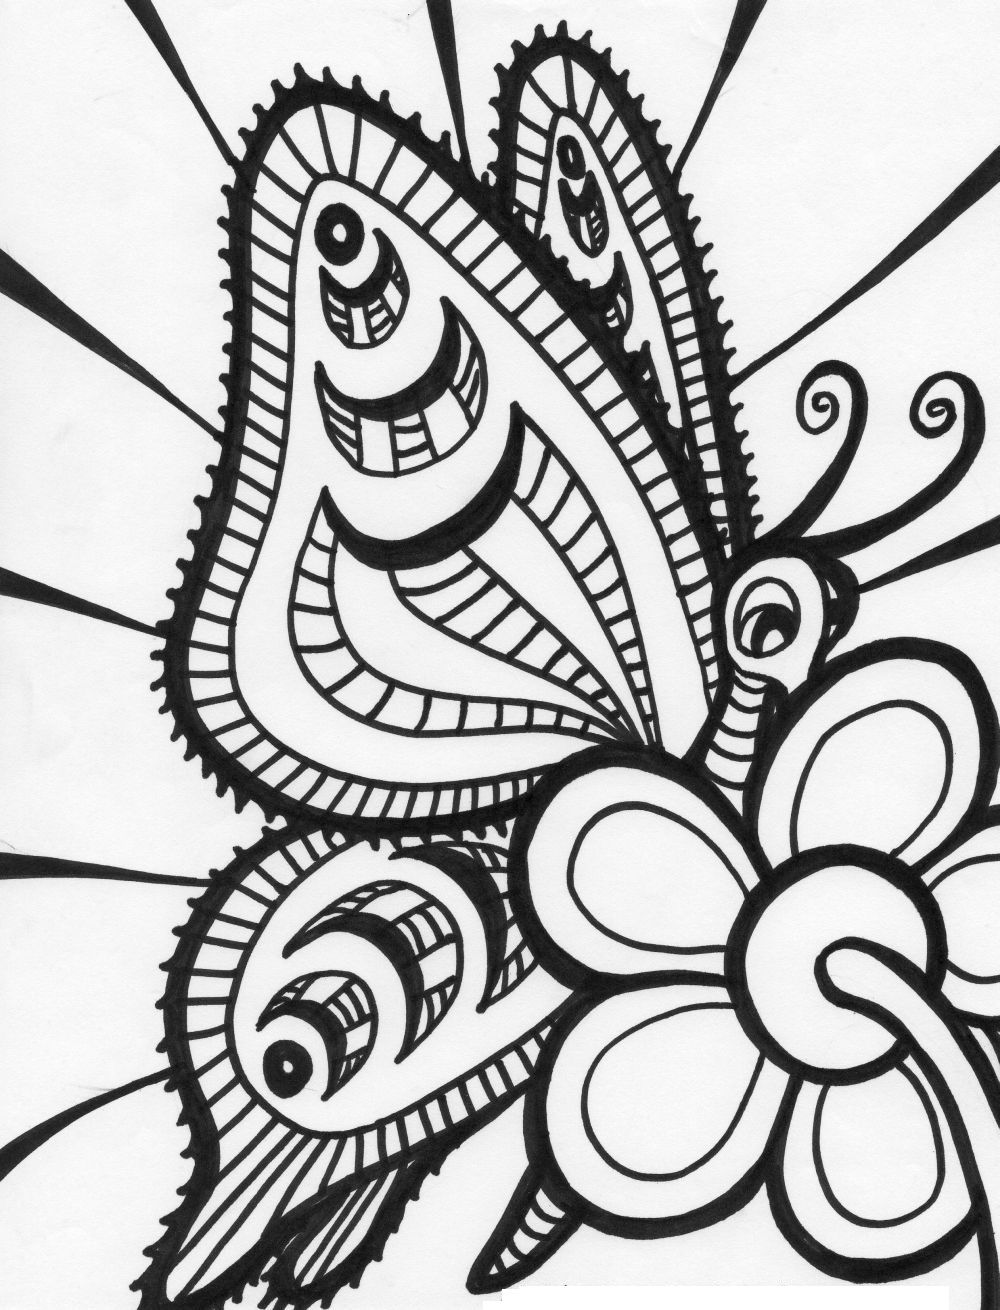 27 Exclusive Photo Of Free Butterfly Coloring Pages Entitlementtrap Com Butterfly Coloring Page Abstract Coloring Pages Animal Coloring Pages [ 1310 x 1000 Pixel ]